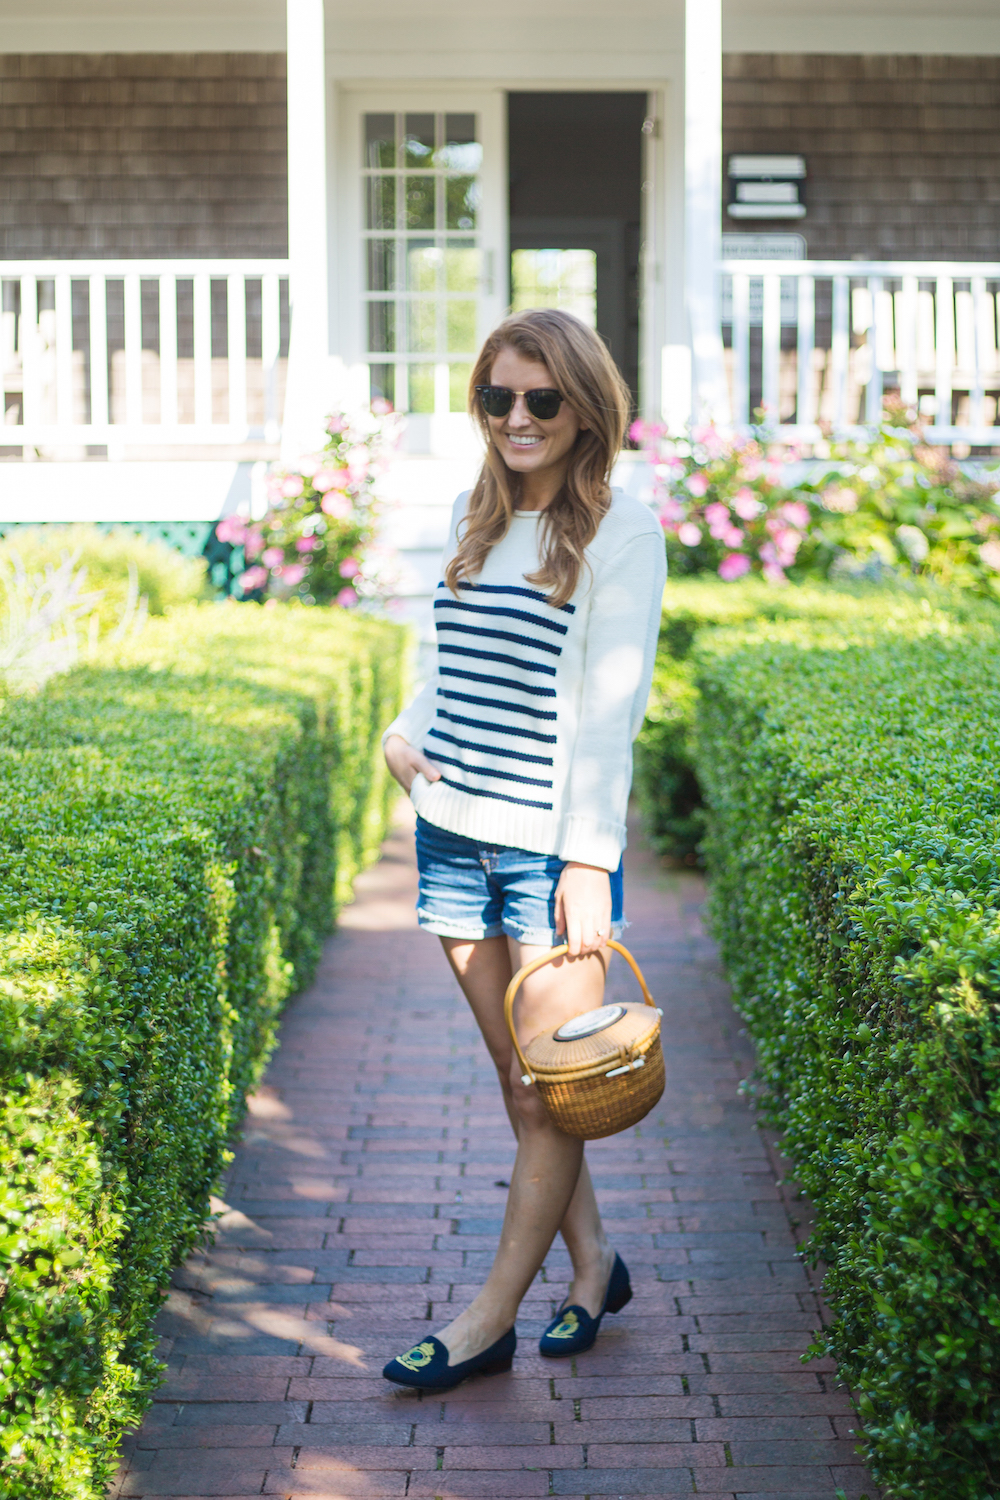 Jcrew The 1988 Striped Rollneck Sweater With Jean Shorts And